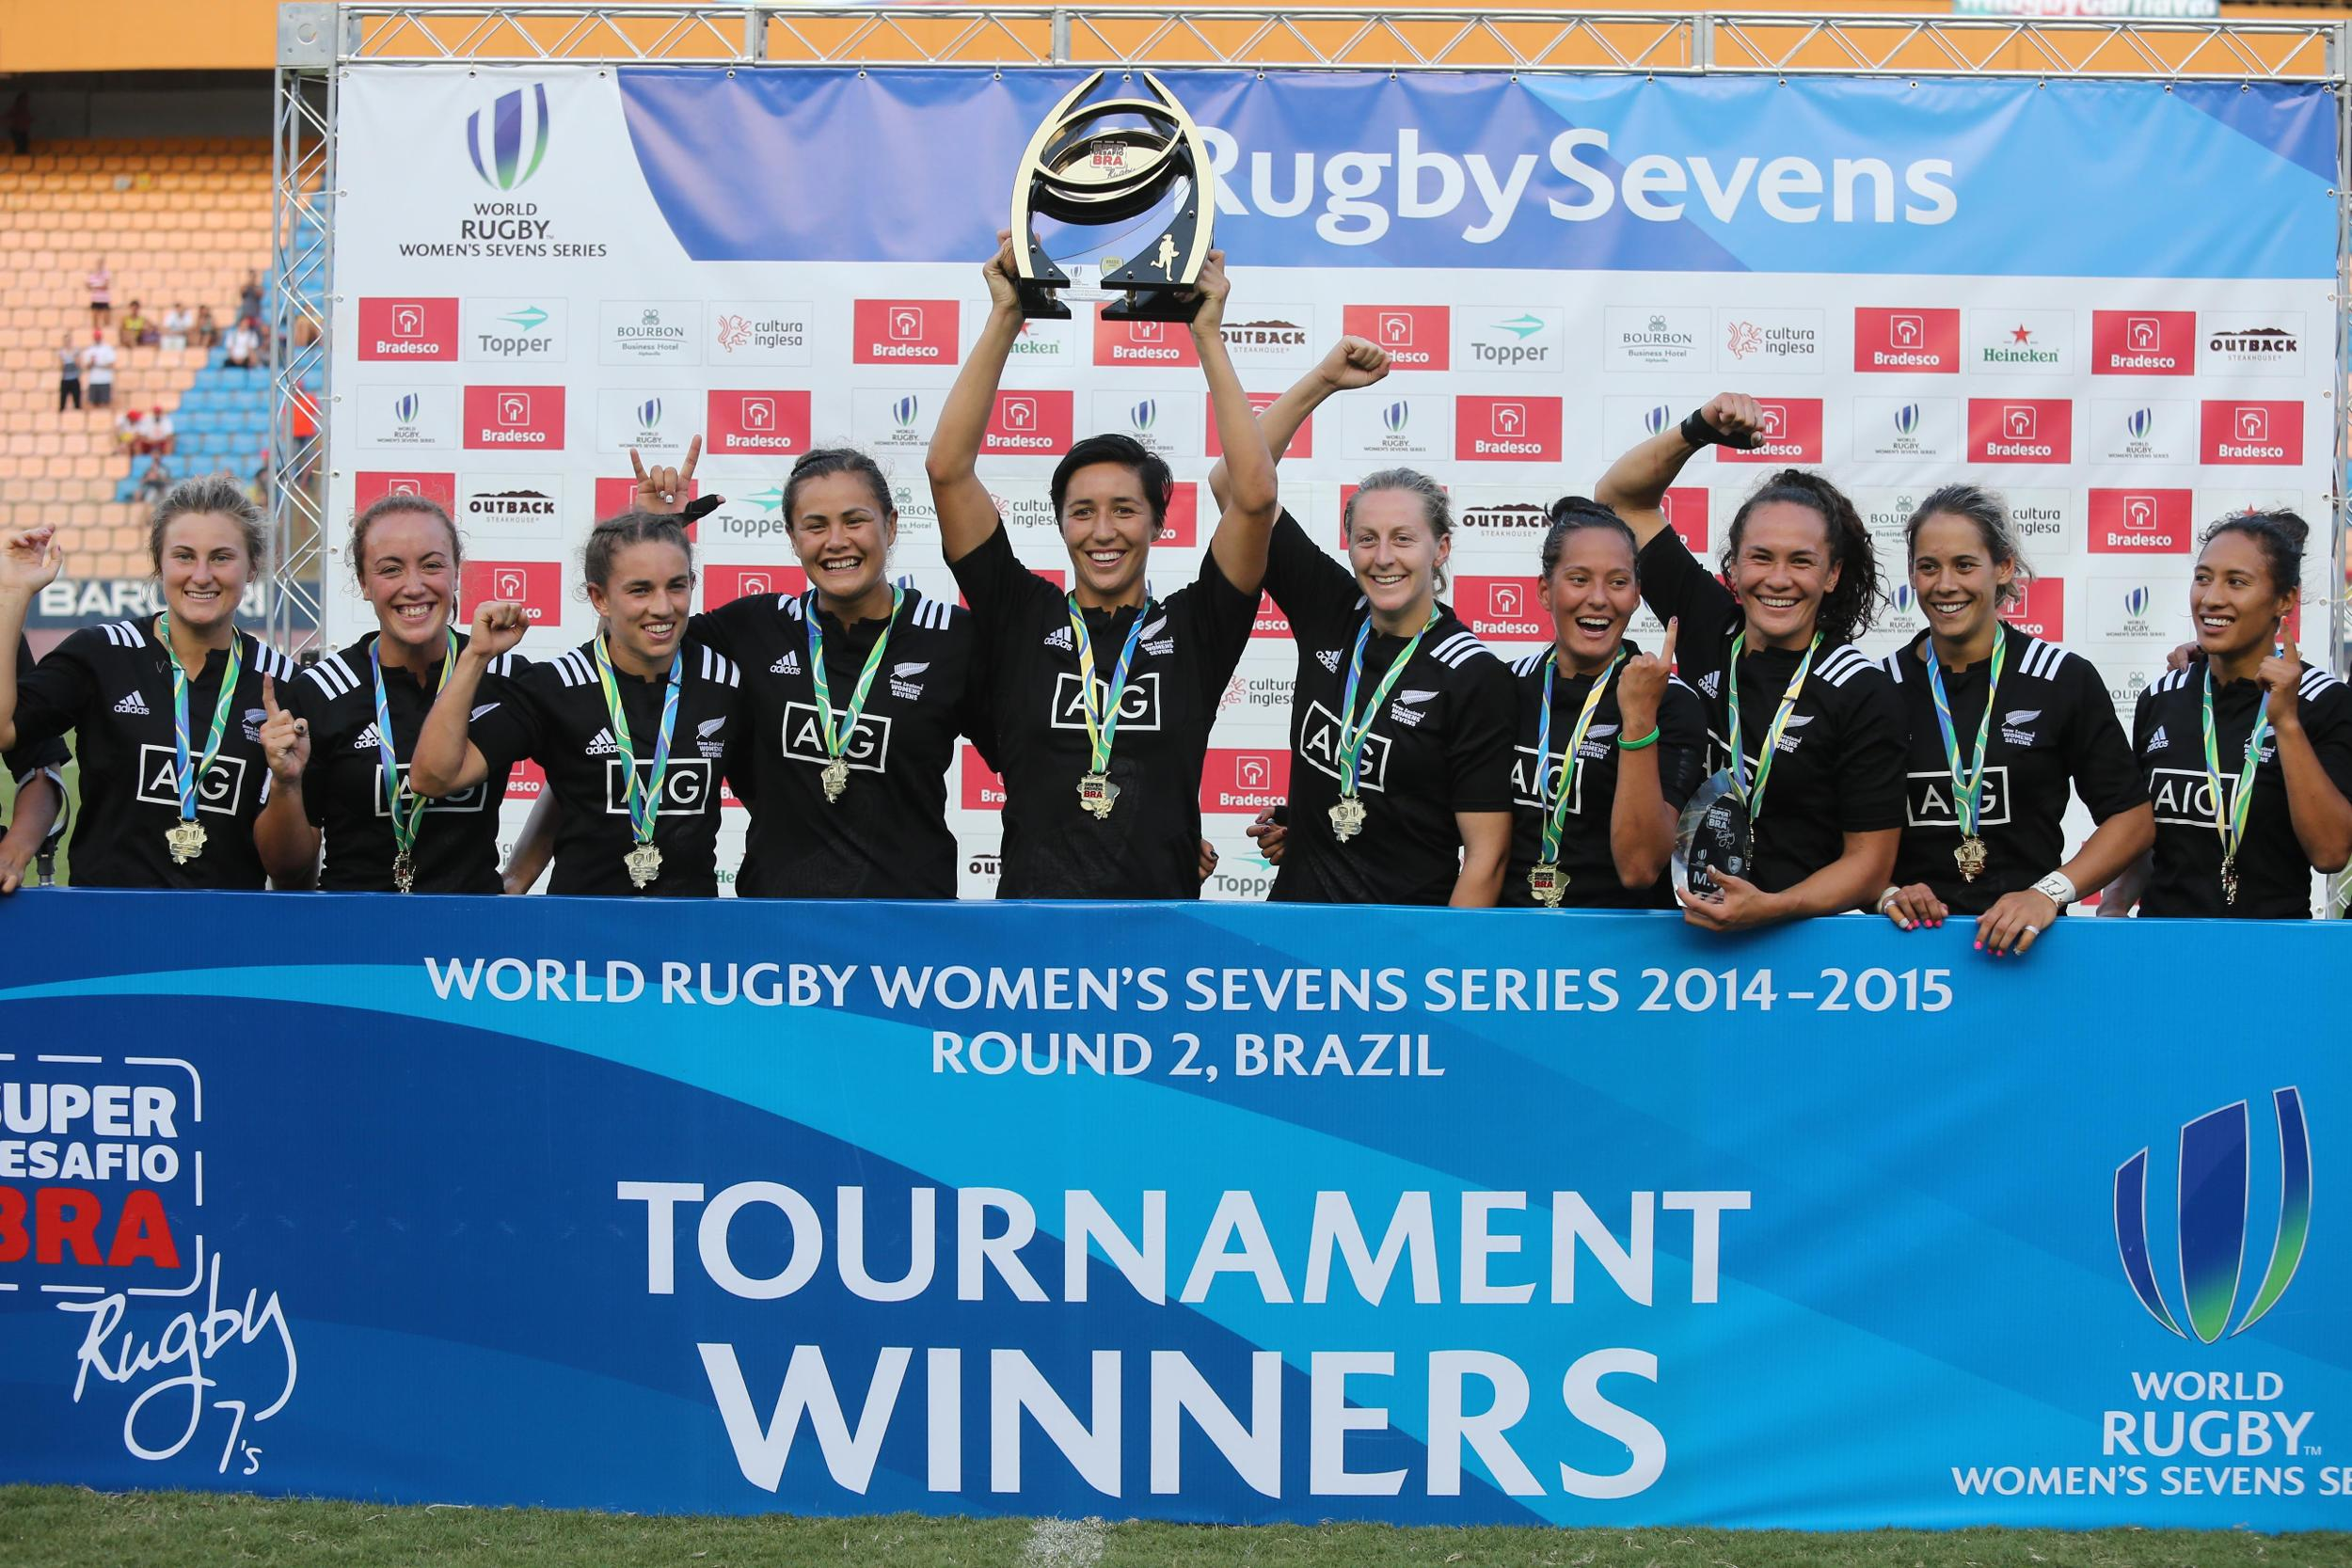 New Zealand lead the overall standings after victories in the opening legs of the series ©World Rugby